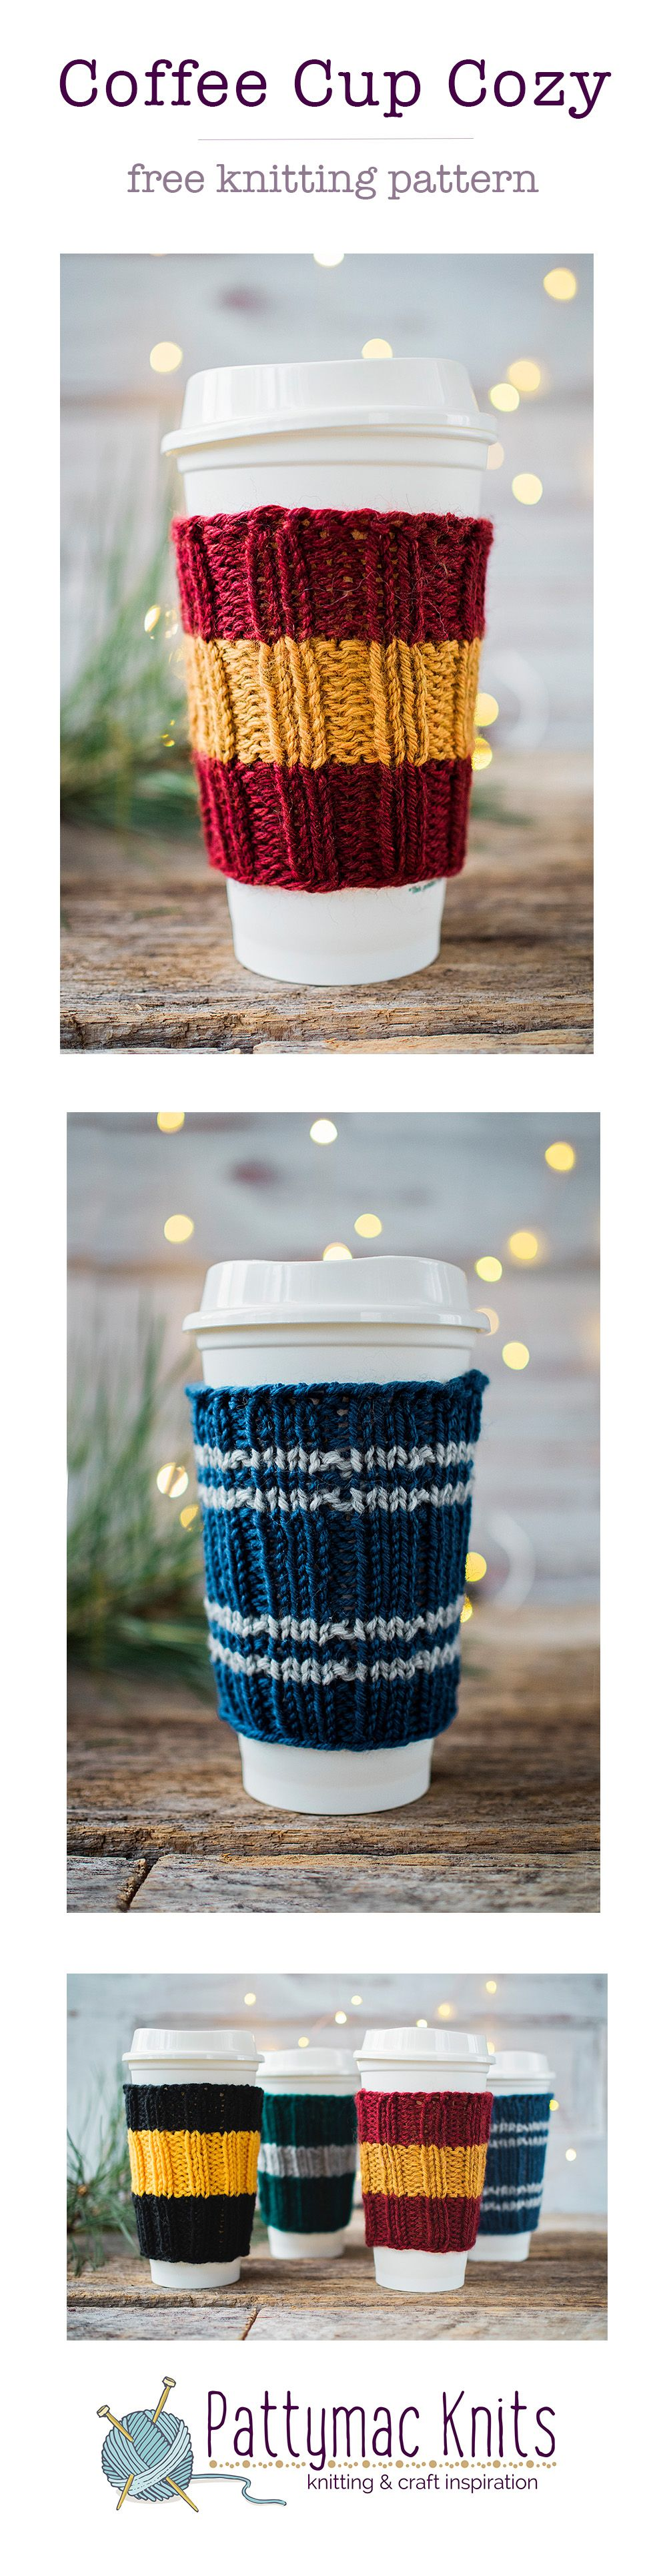 Free Hogwarts Inspired Knitting Pattern | Coffee cup cozy, Coffee ...